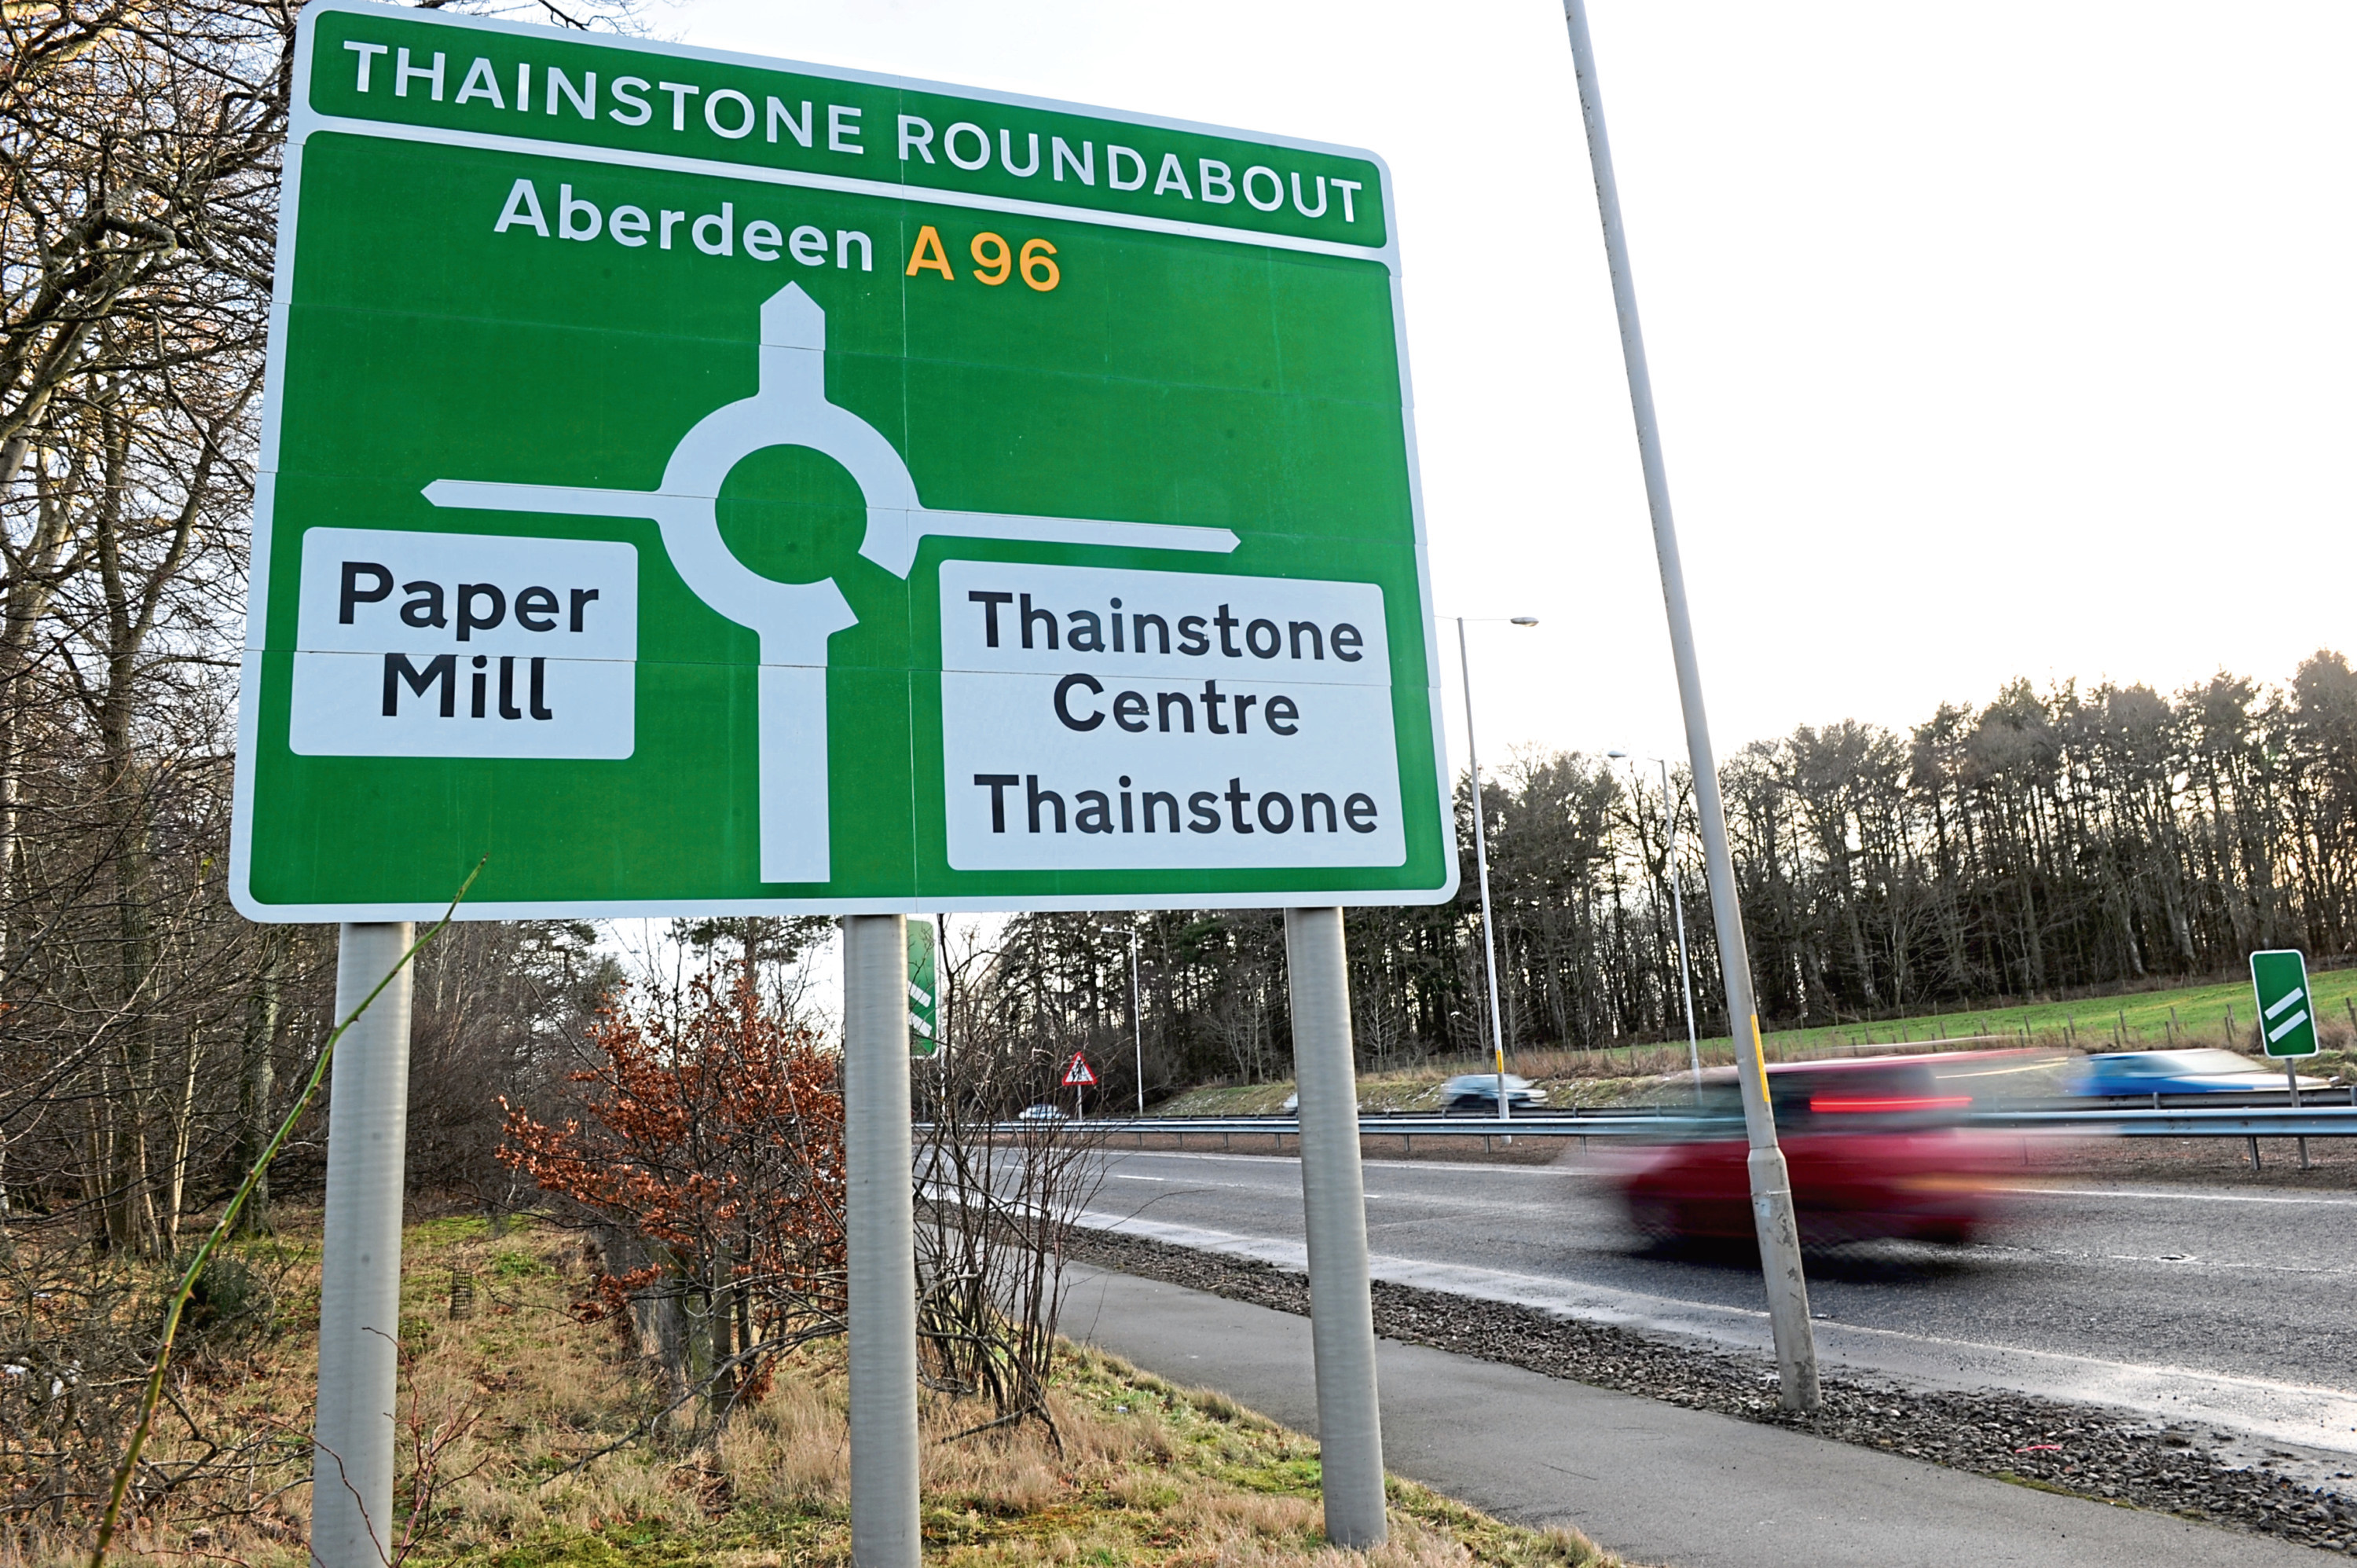 The commercial storage building could be built to the south-east of Thainstone Roundabout